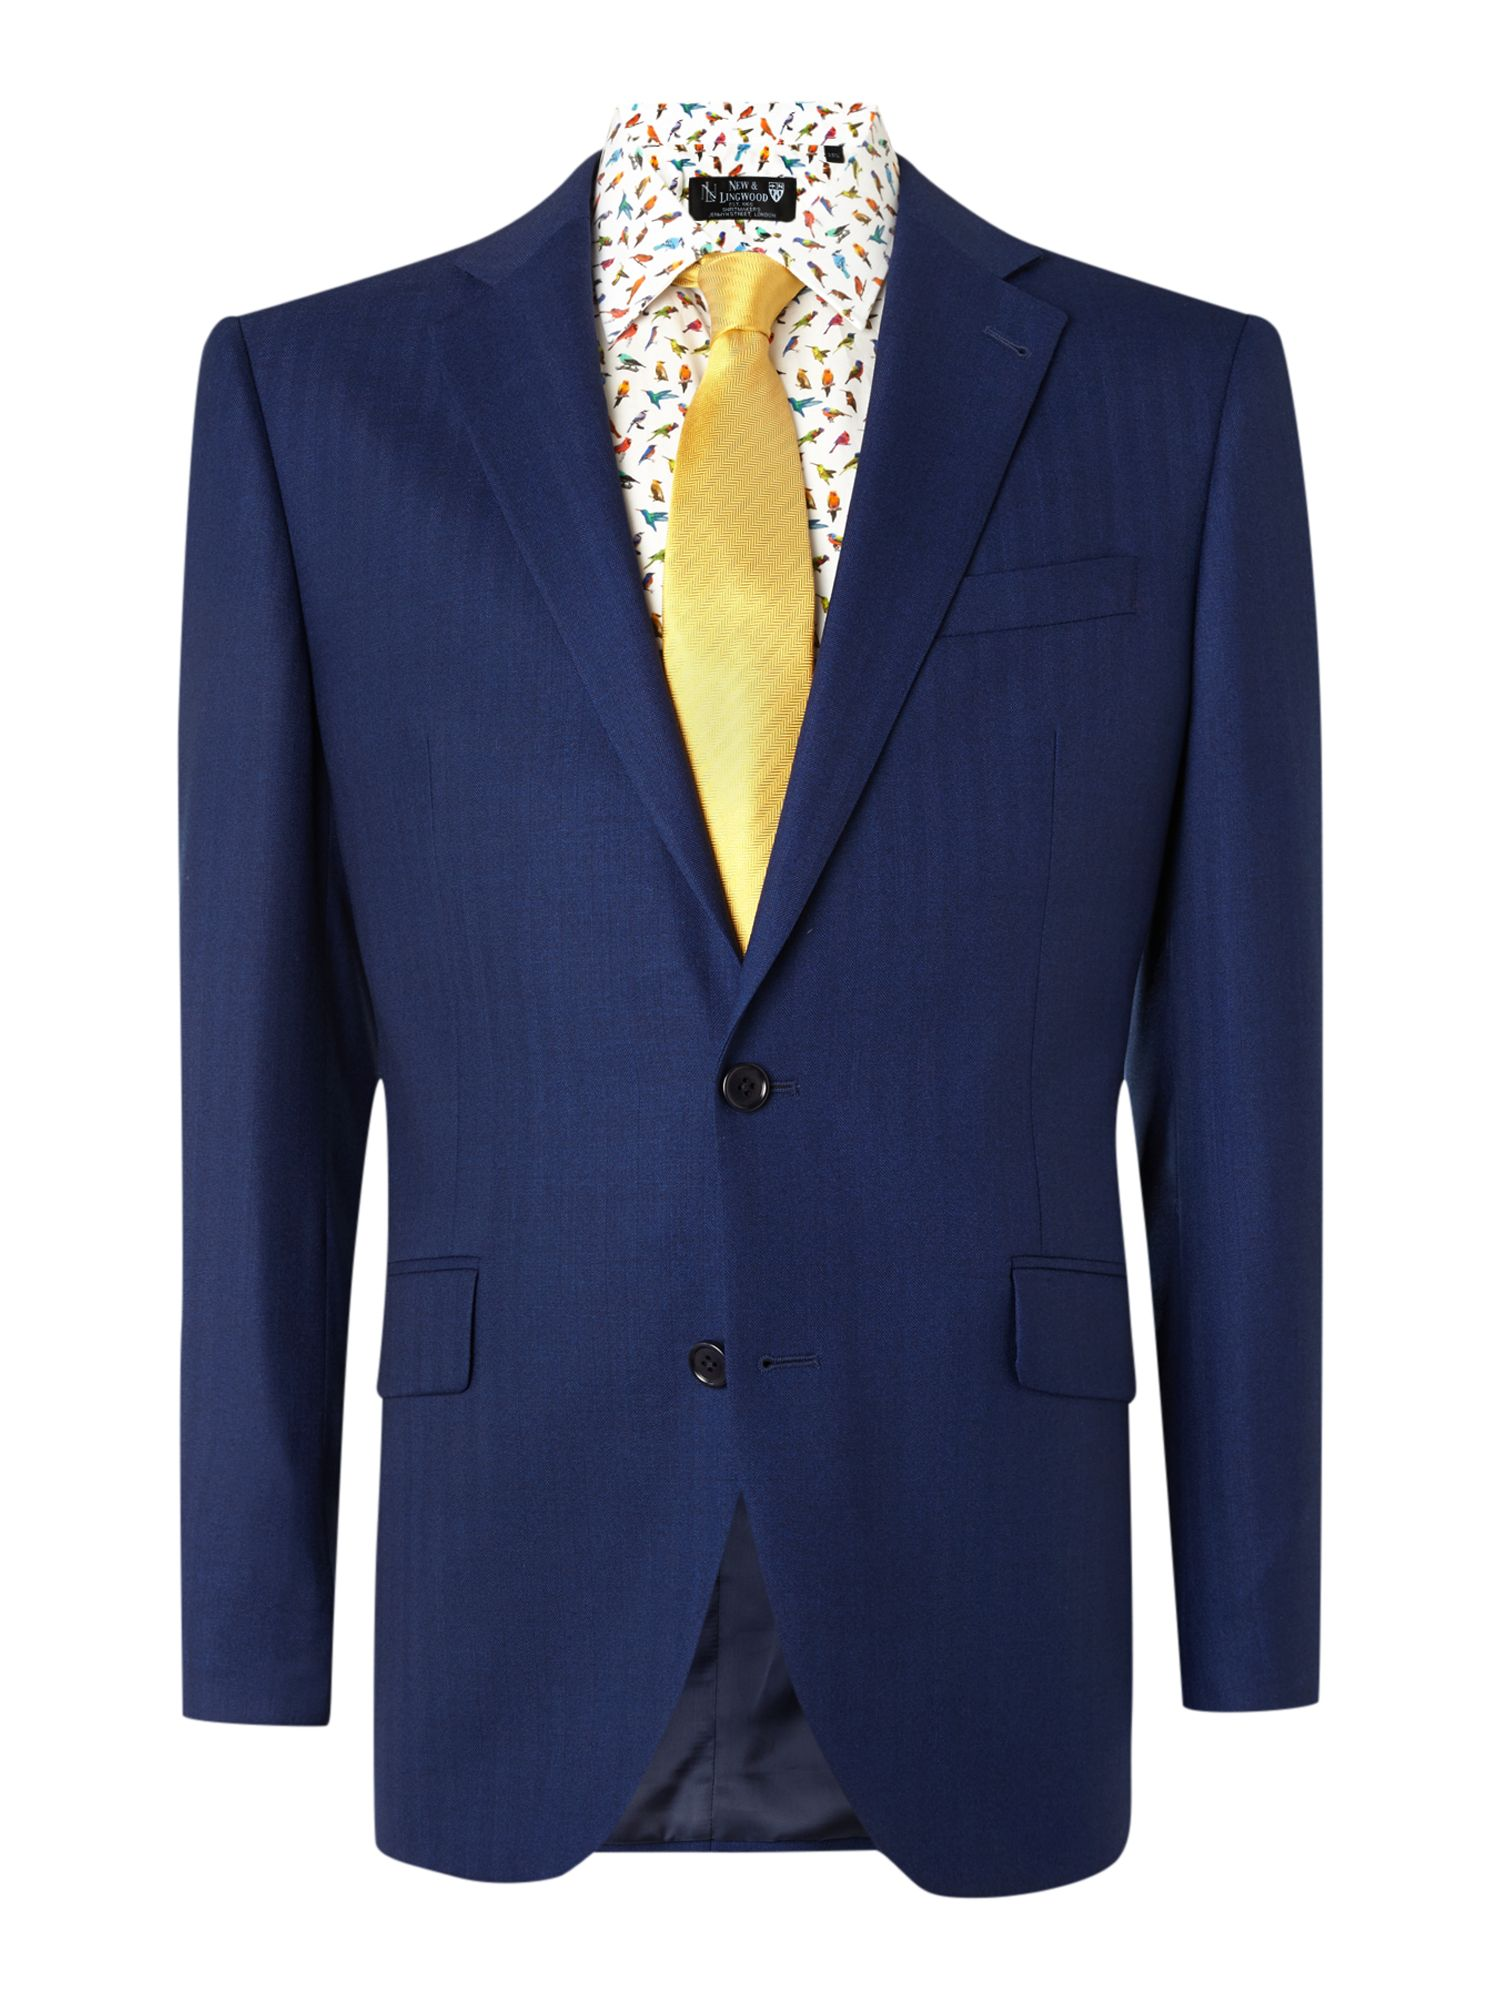 New & Lingwood Men's New & Lingwood Anderby herringbone tailored fit Jacket, Blue